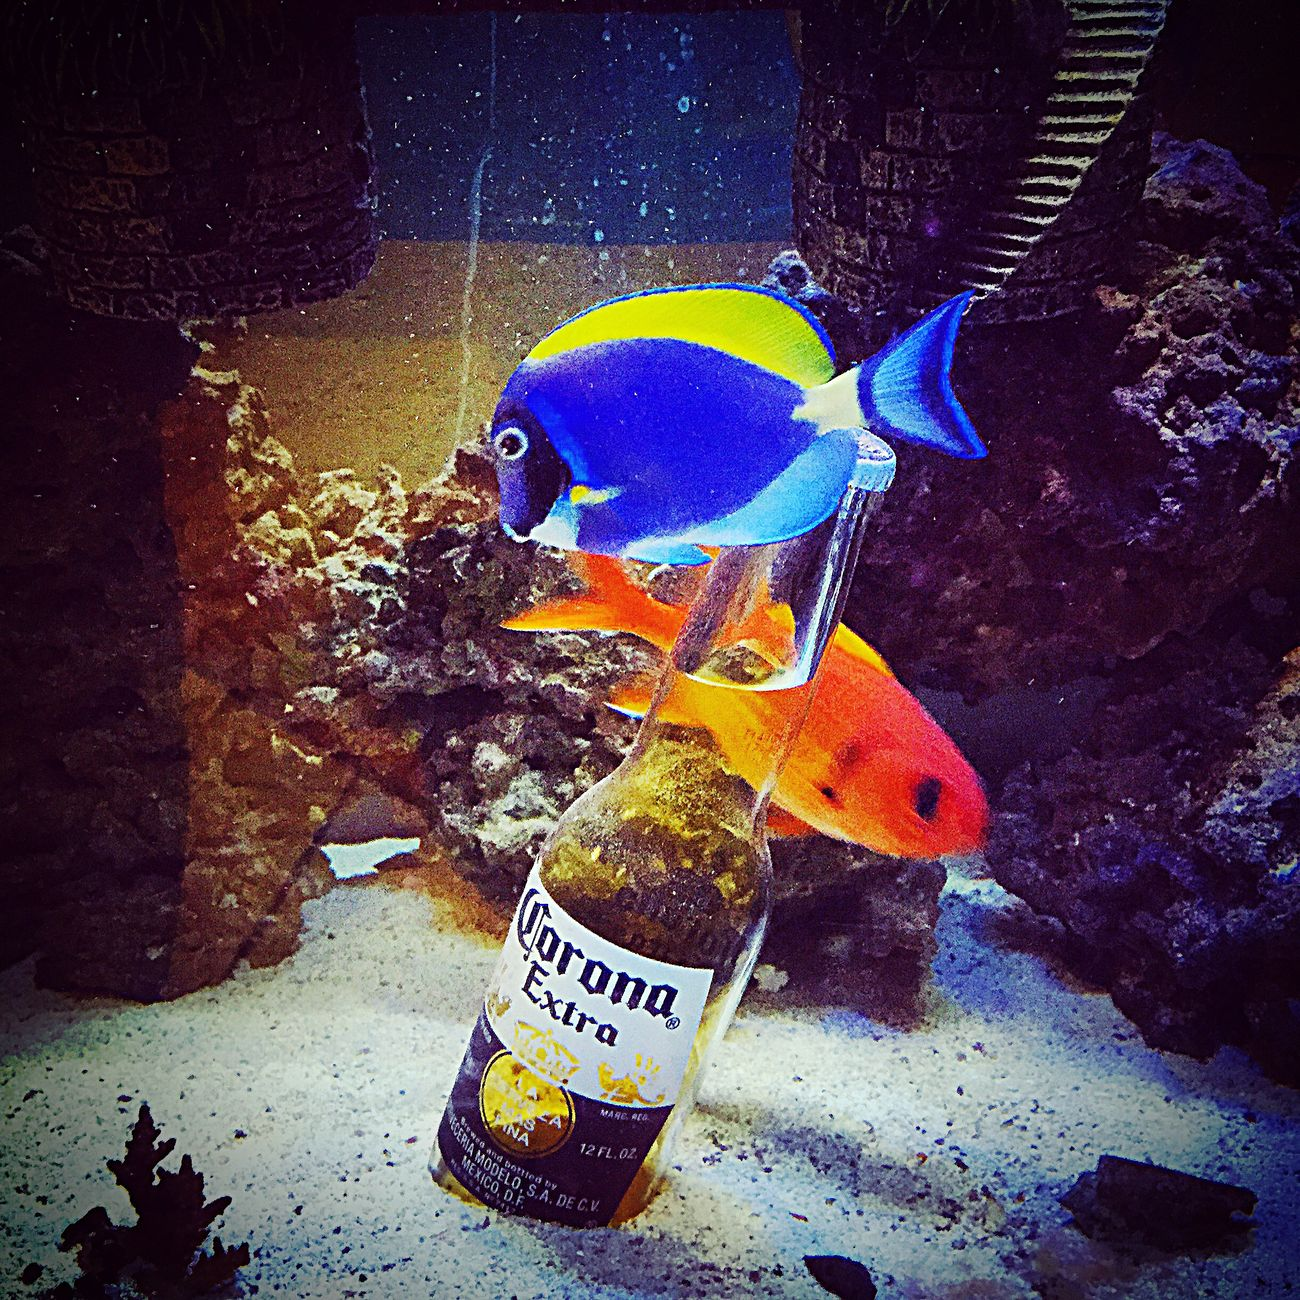 Fish Little Blue Fishes Swimming Cerveza Beer Corona Blue Fish Onefishtwofishredfishbluefish Aquarium Fishes Fishes !!